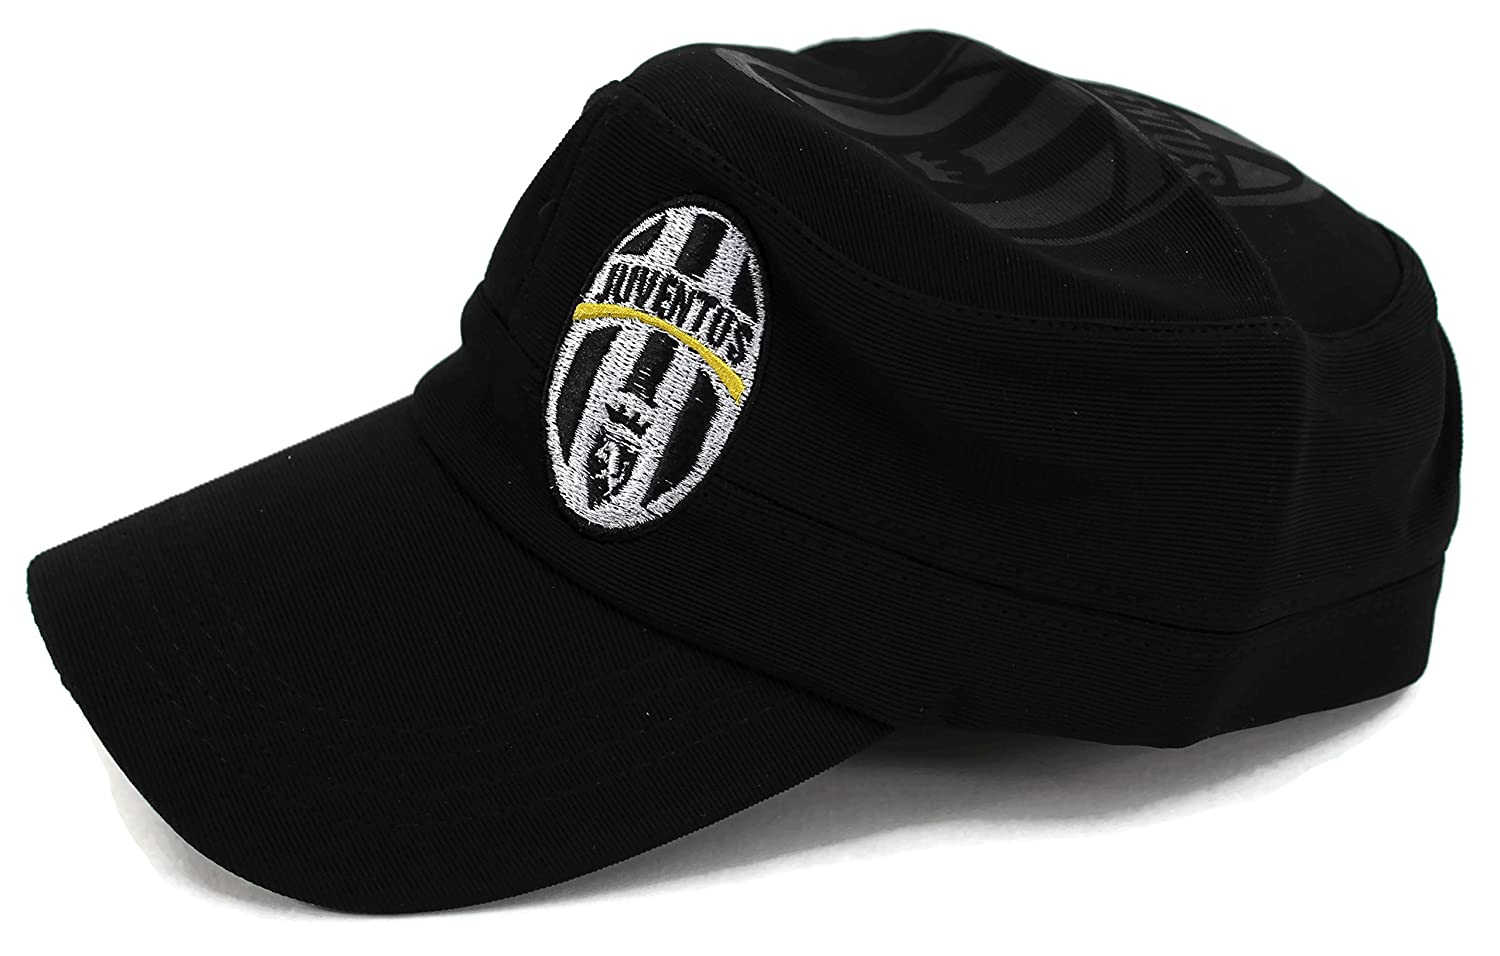 "High End Hats "" World Soccer Football Team Military Hat Collection "" Embroidered Flexfit Army Style Cap"